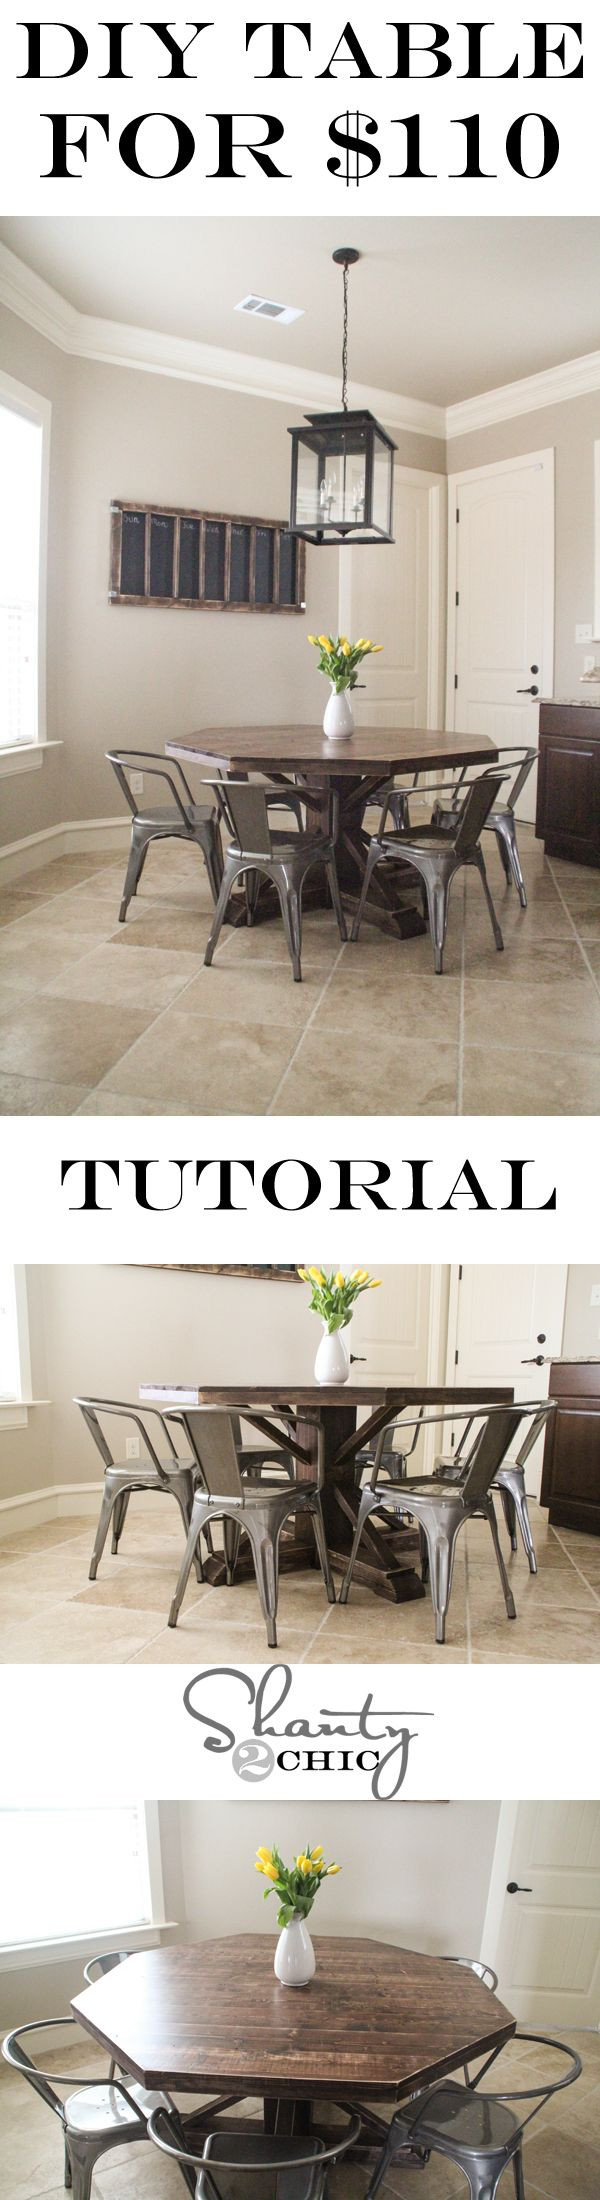 pottery barn vase filler of 112 pottery barn poker table pottery barn shuffle board man cave inside 25 best ideas about octagon table on pinterest octagon for pottery barn poker table